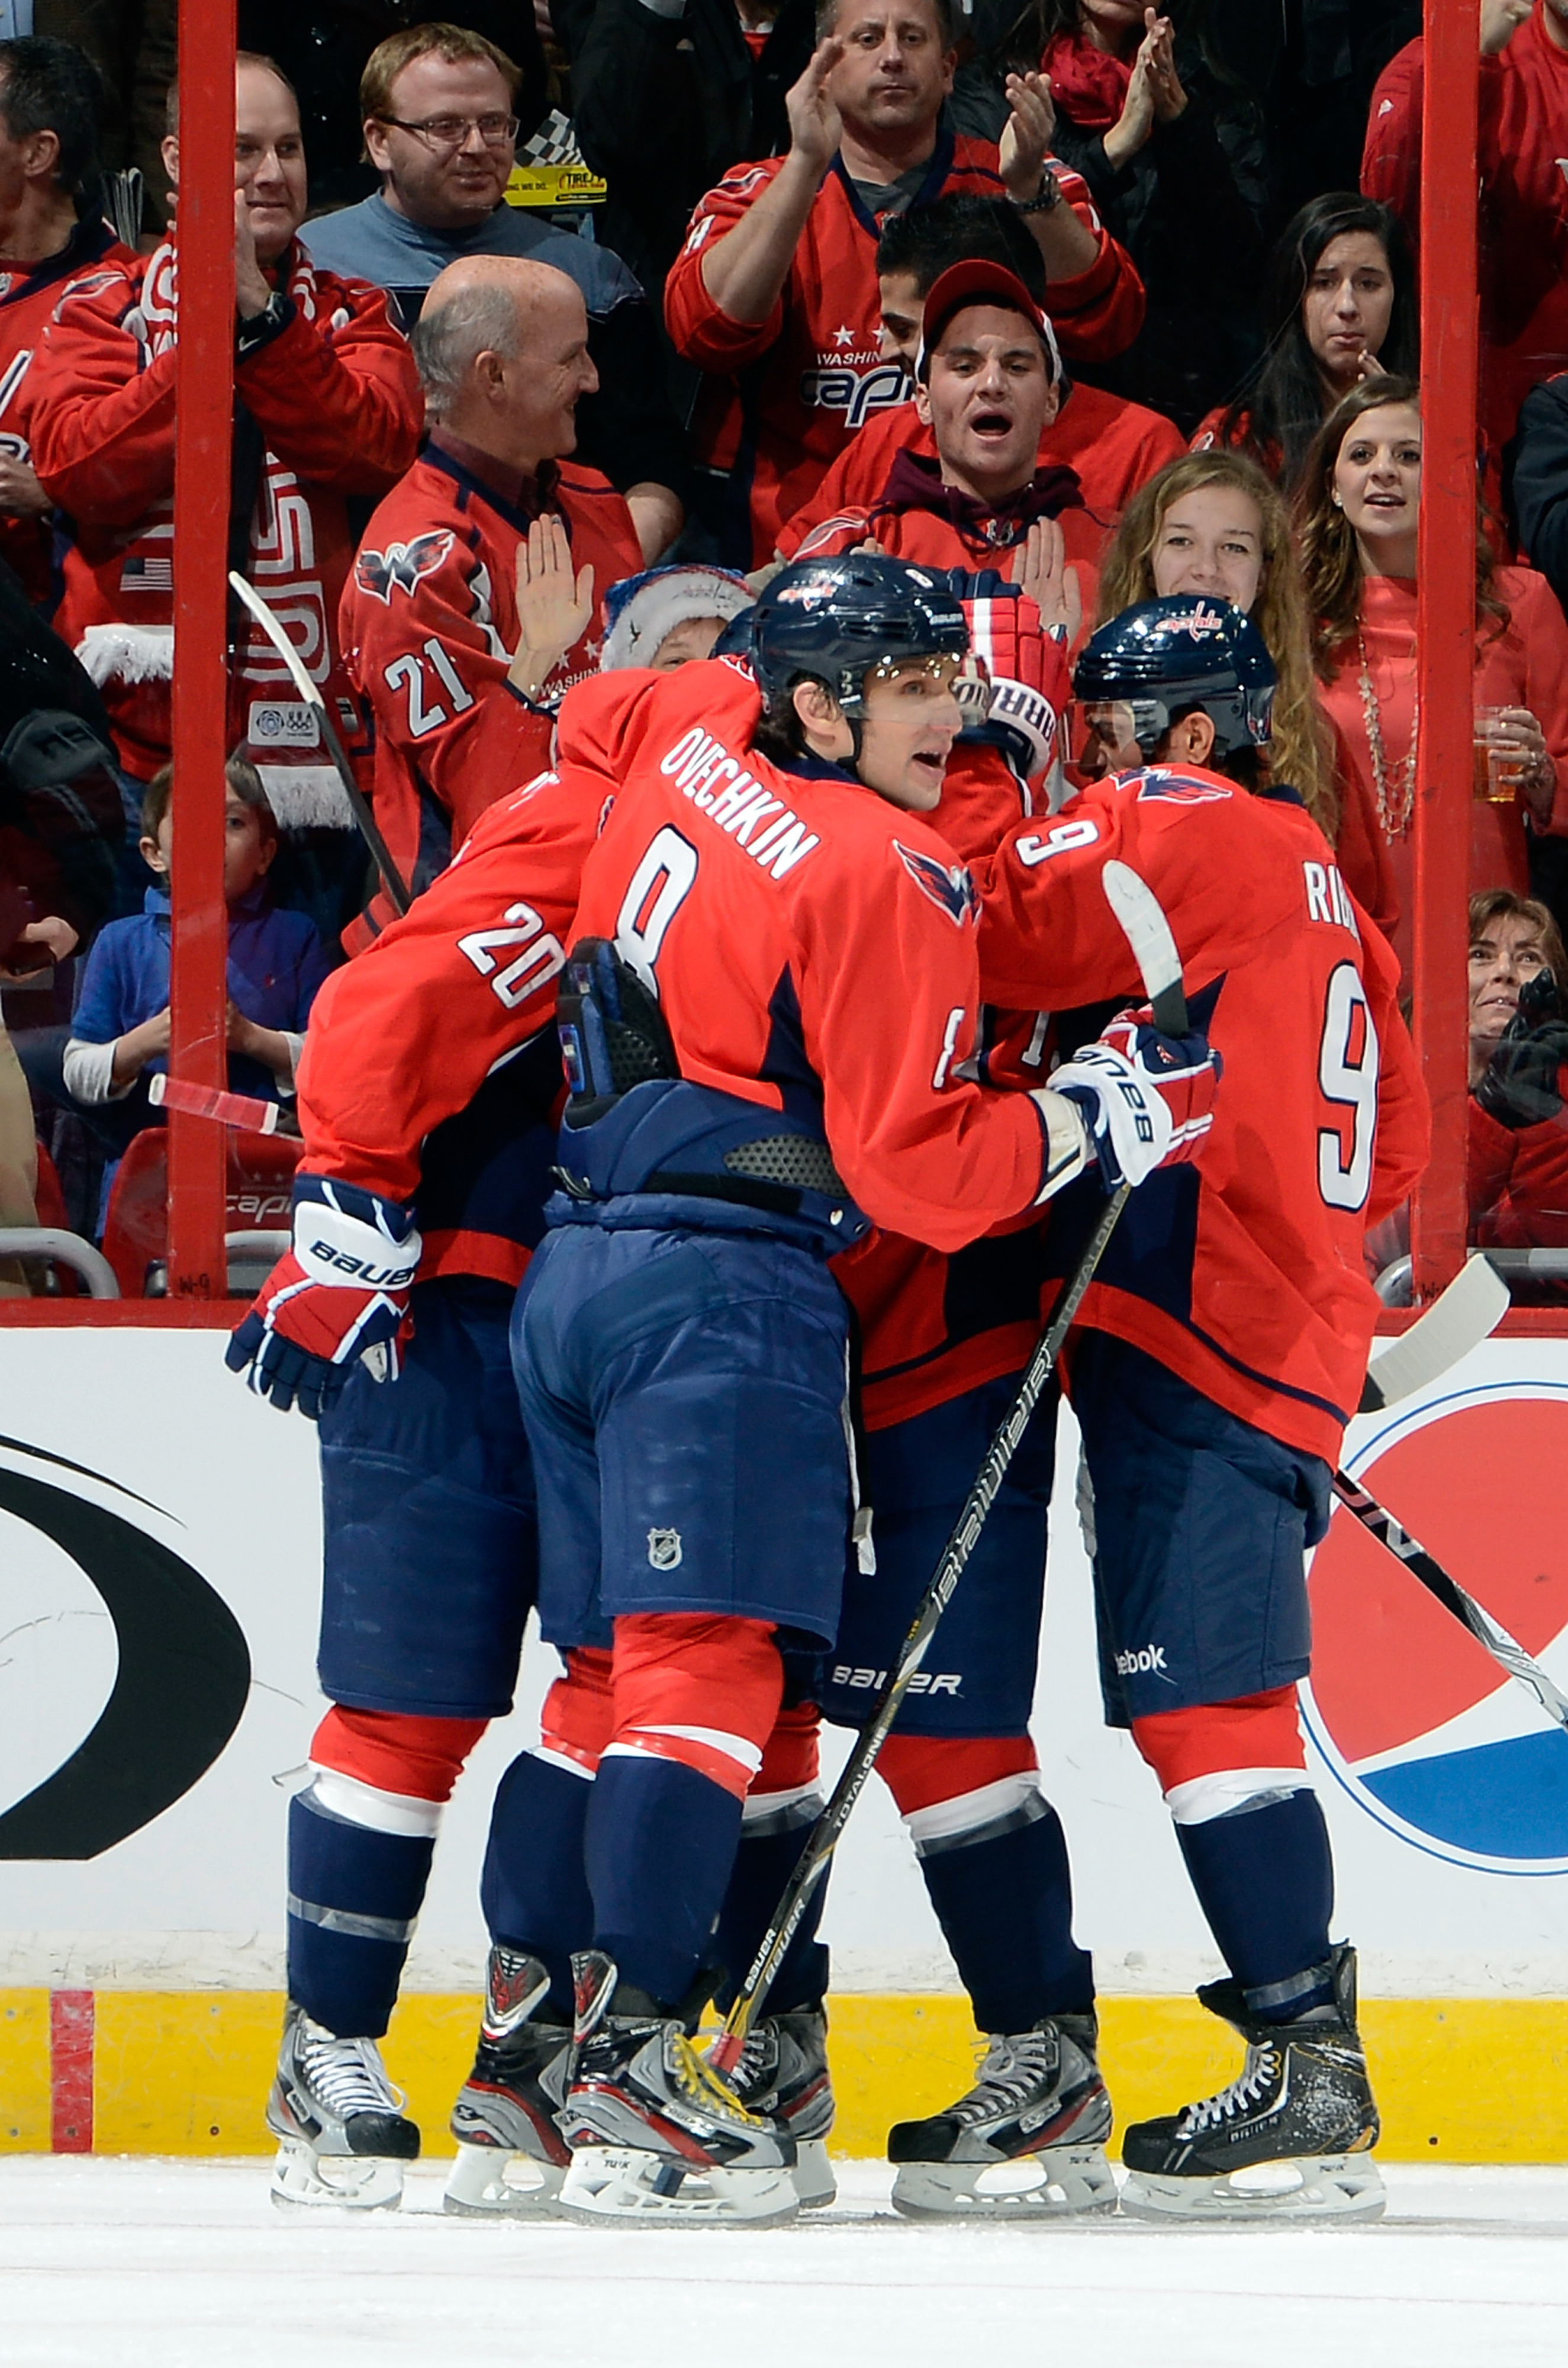 Are Happy Days here again? Despite their rousing win over the Panthers last night, the Caps remain at the bottom of the standings.